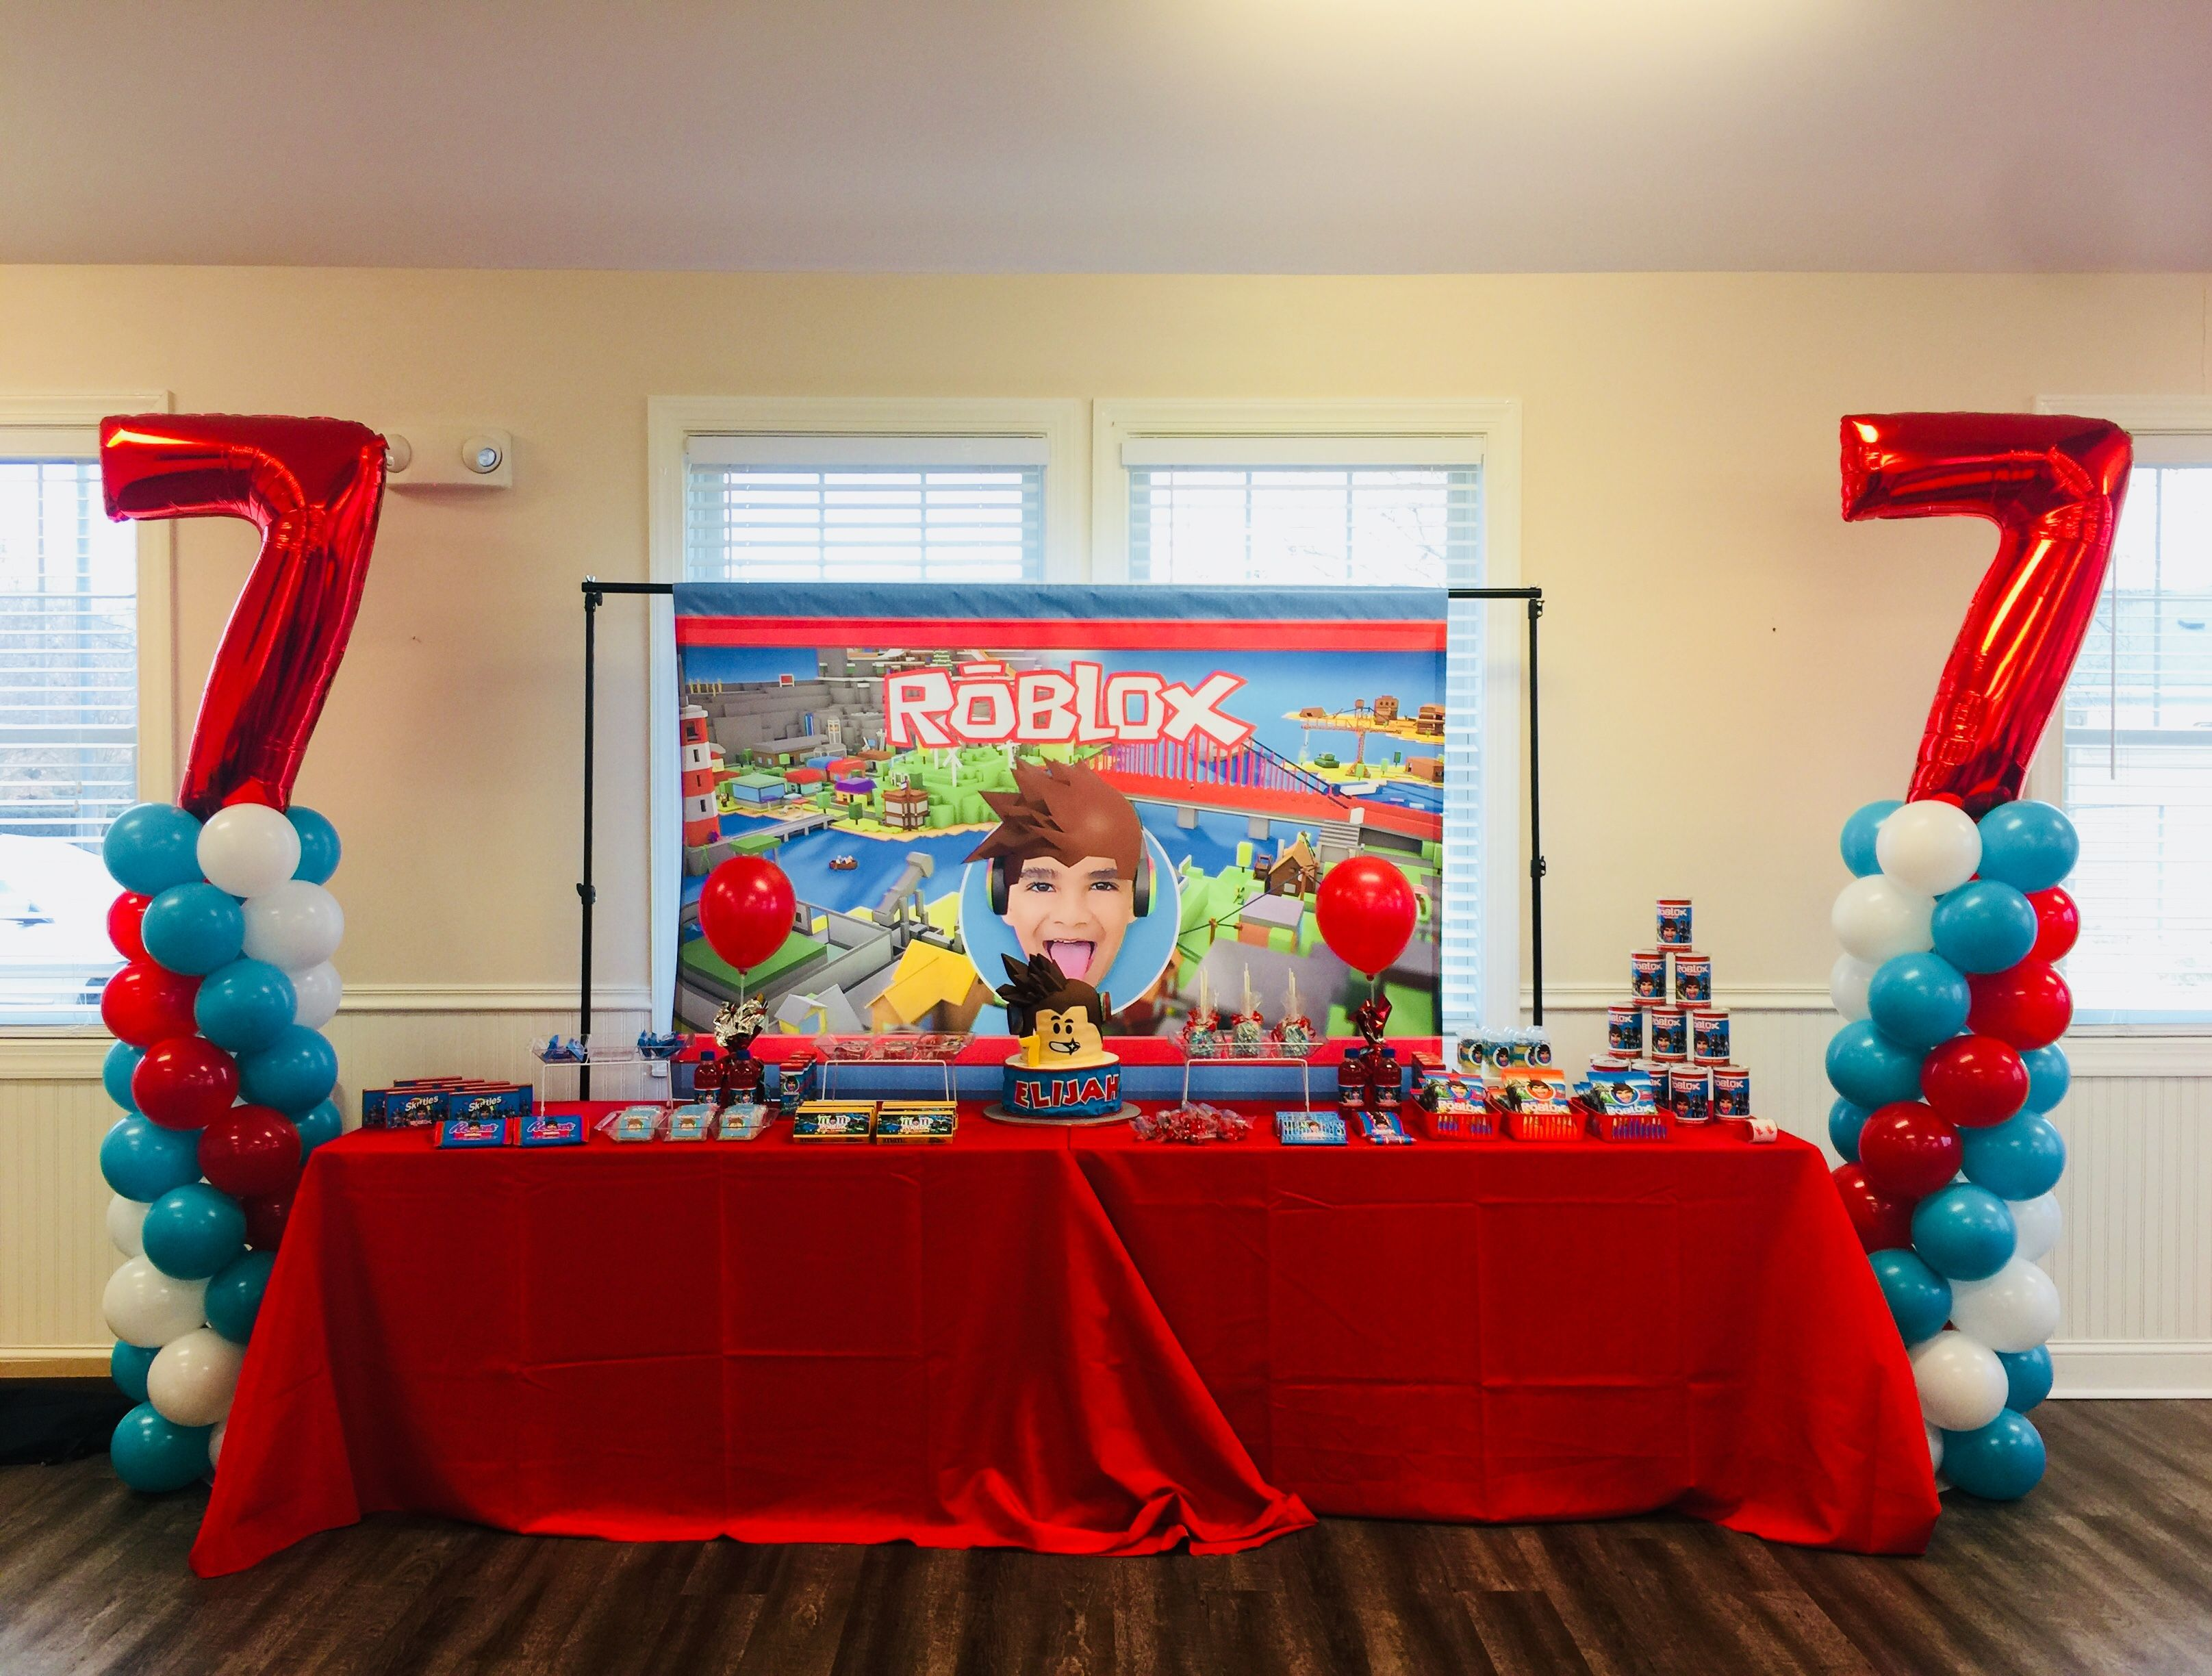 Roblox party set up decor dessert table Designed by Dainty